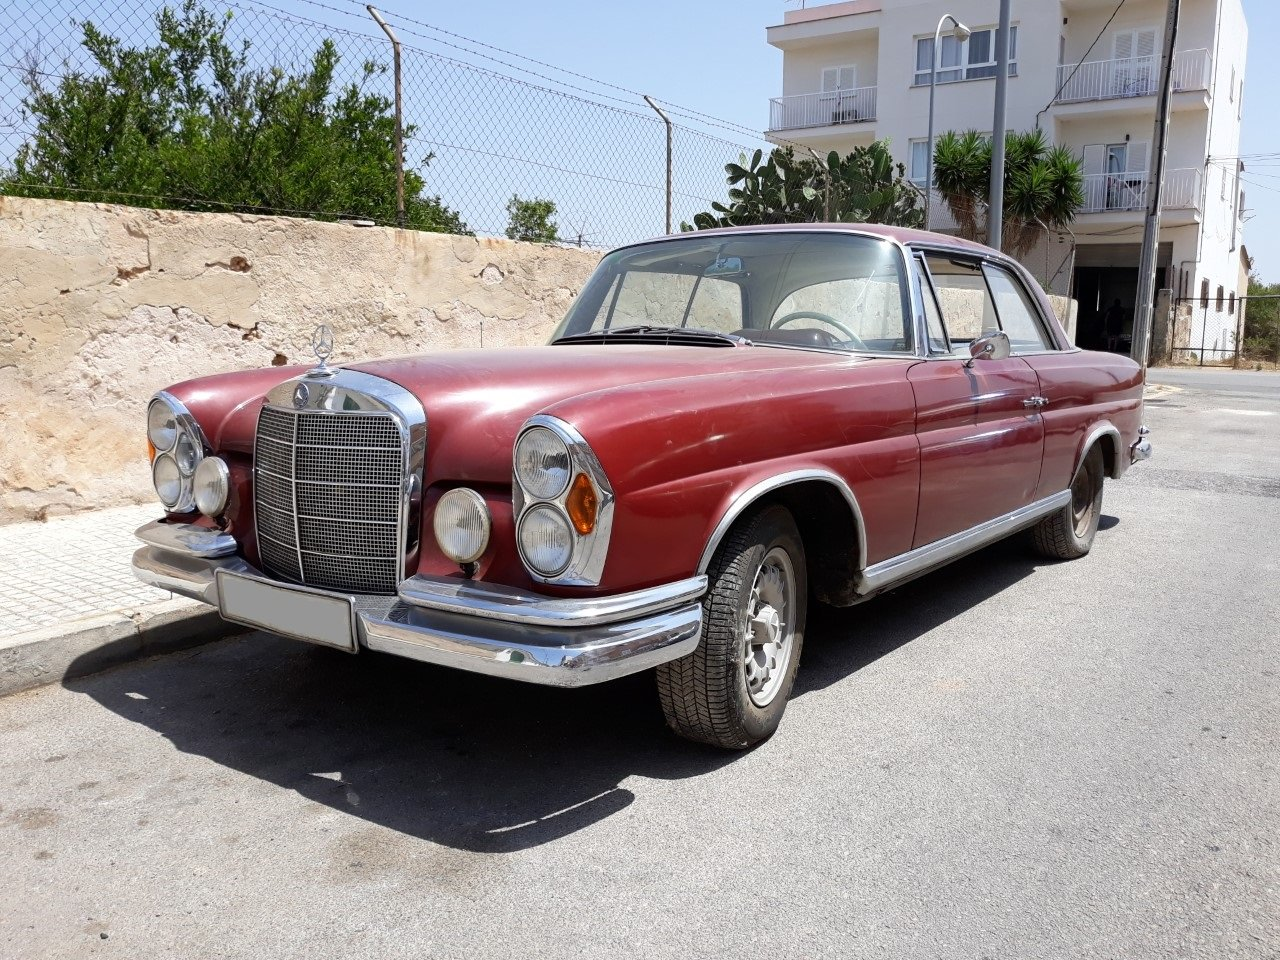 1967 LHD-Mercedes Benz 250SE Coupe-manual transmission For Sale (picture 2 of 6)